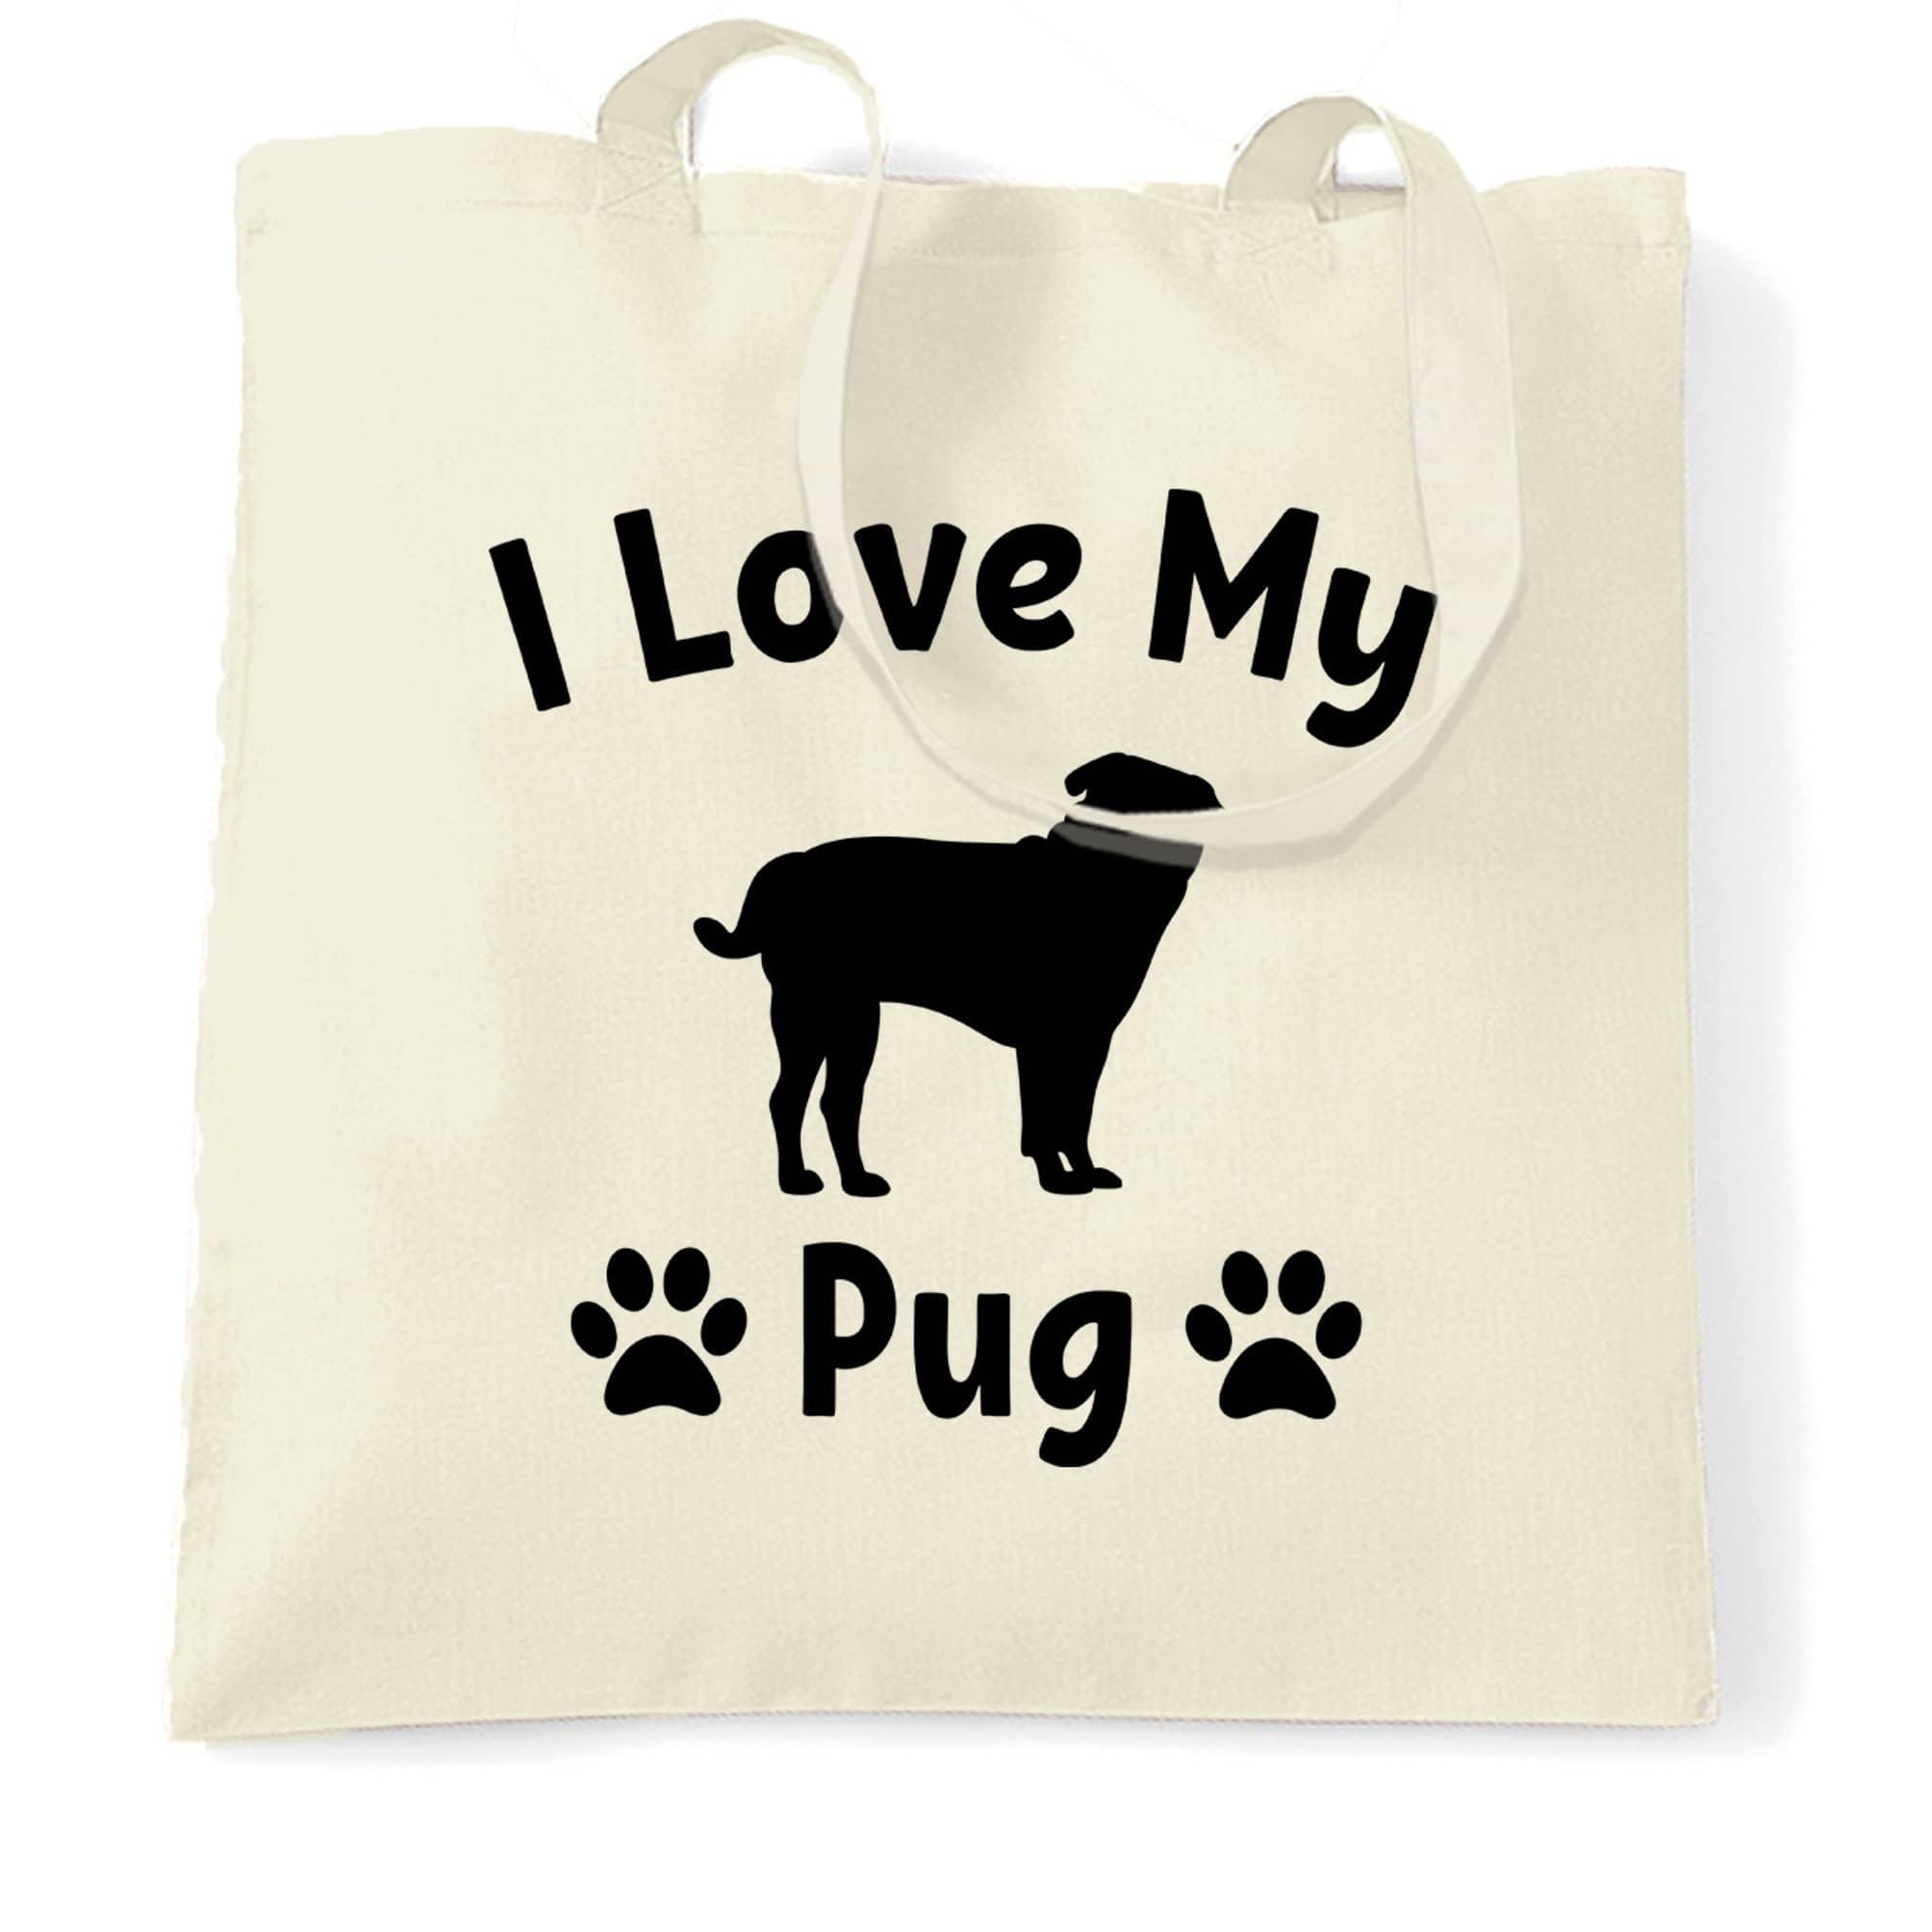 Dog Owner Tote Bag I Love My Pug Slogan